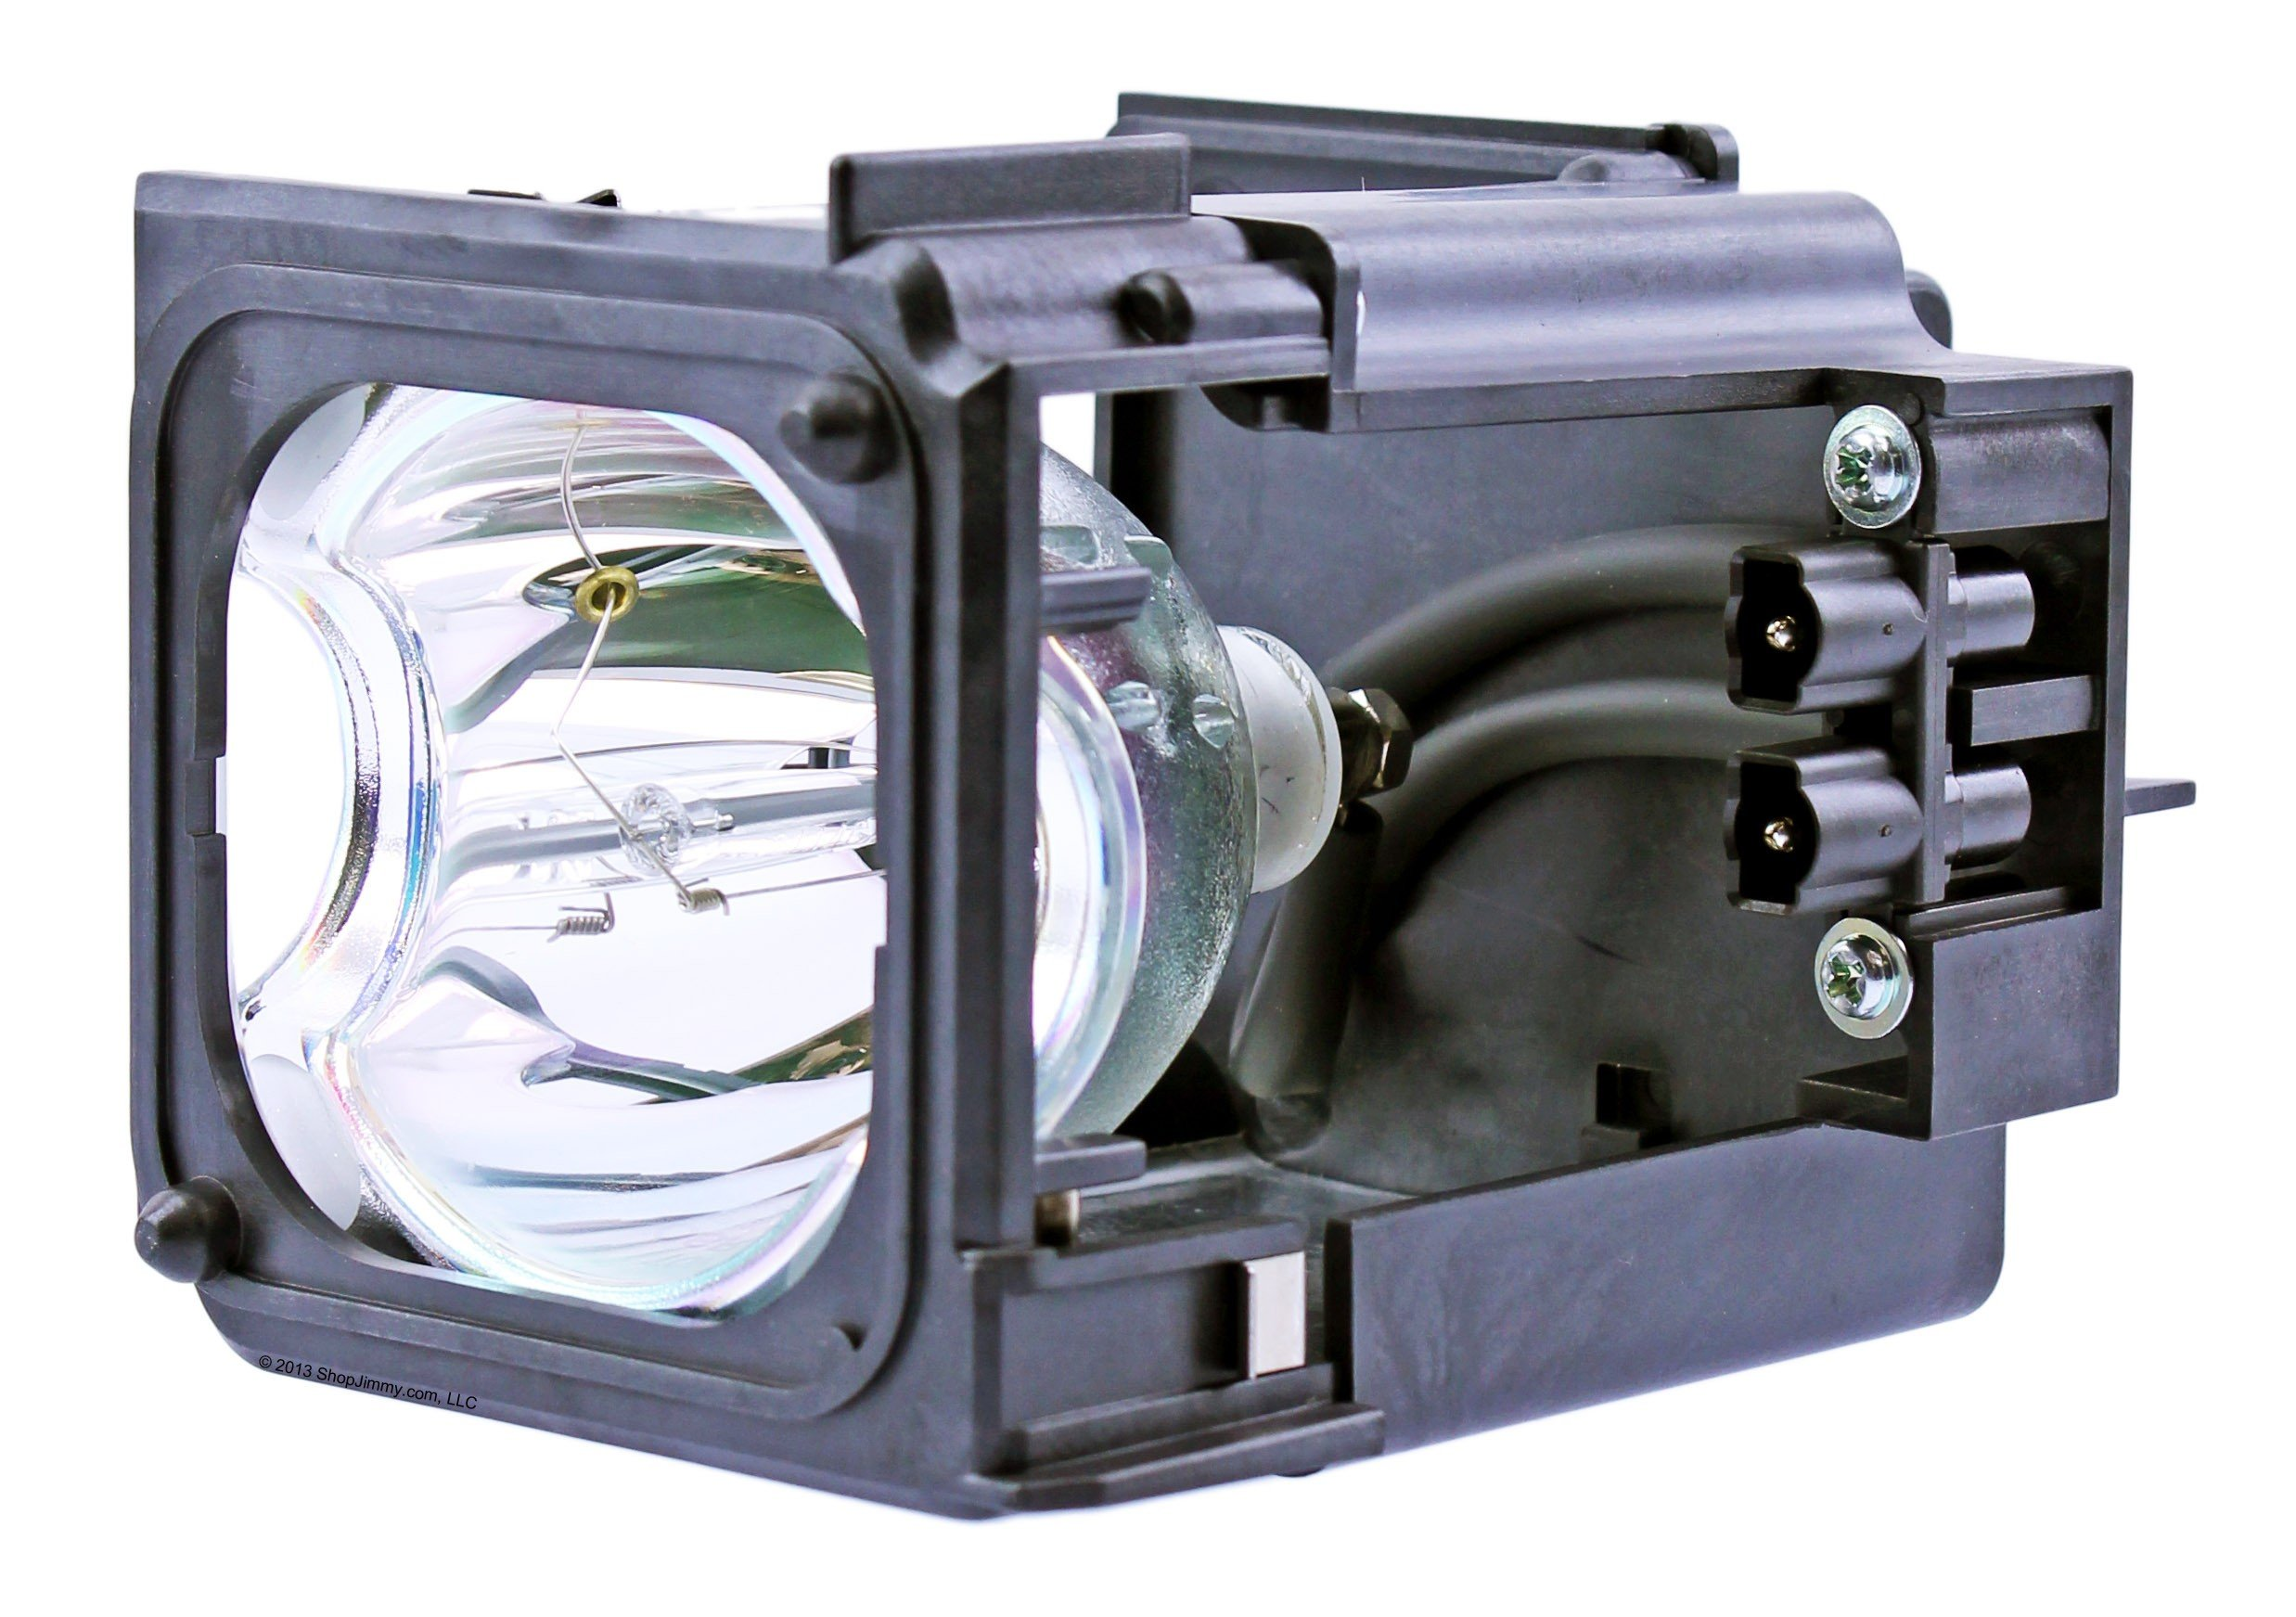 c photo h tv reg vlt lamp b replacement mitsubishi projector product for